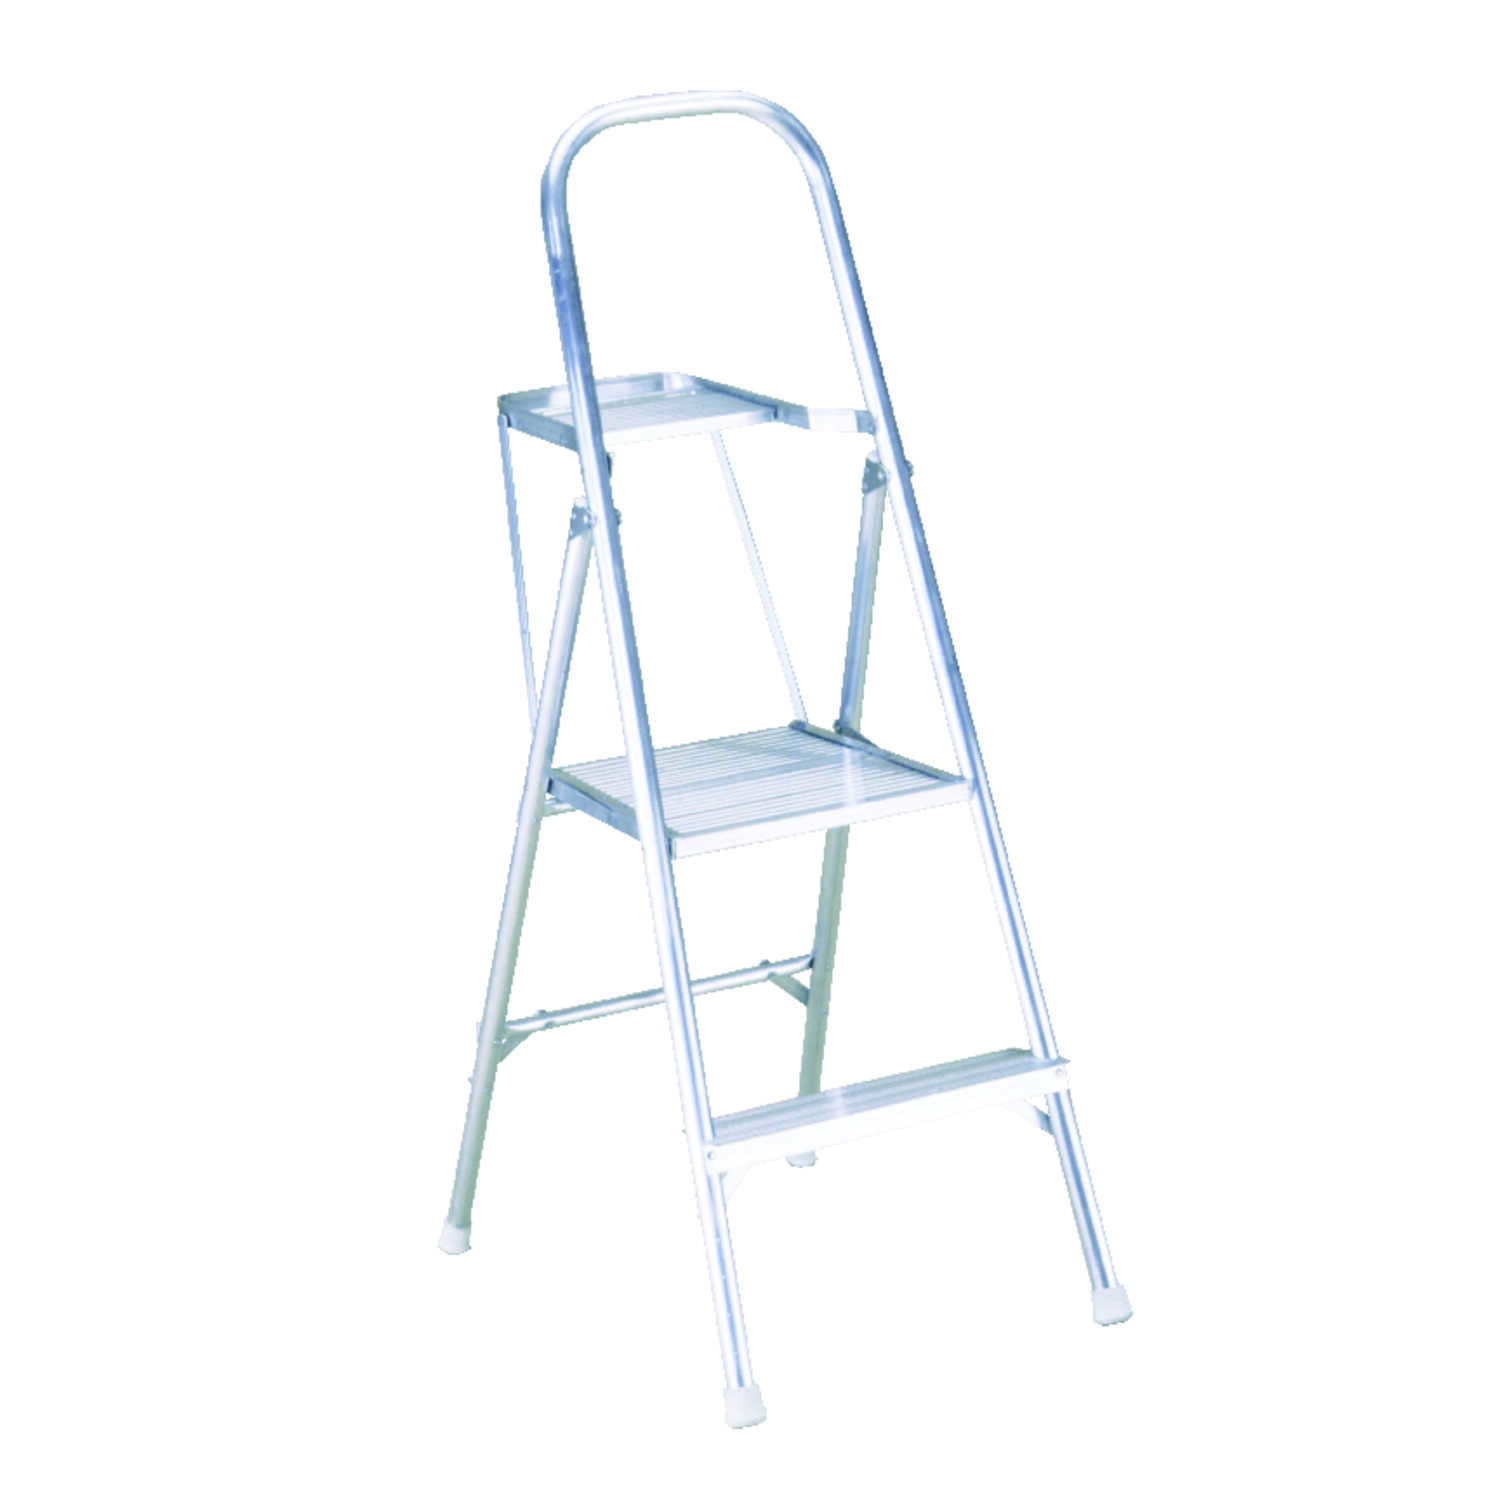 Werner  4 ft. H x 20 in. W Aluminum  Type III  200 lb. capacity Platform Ladder